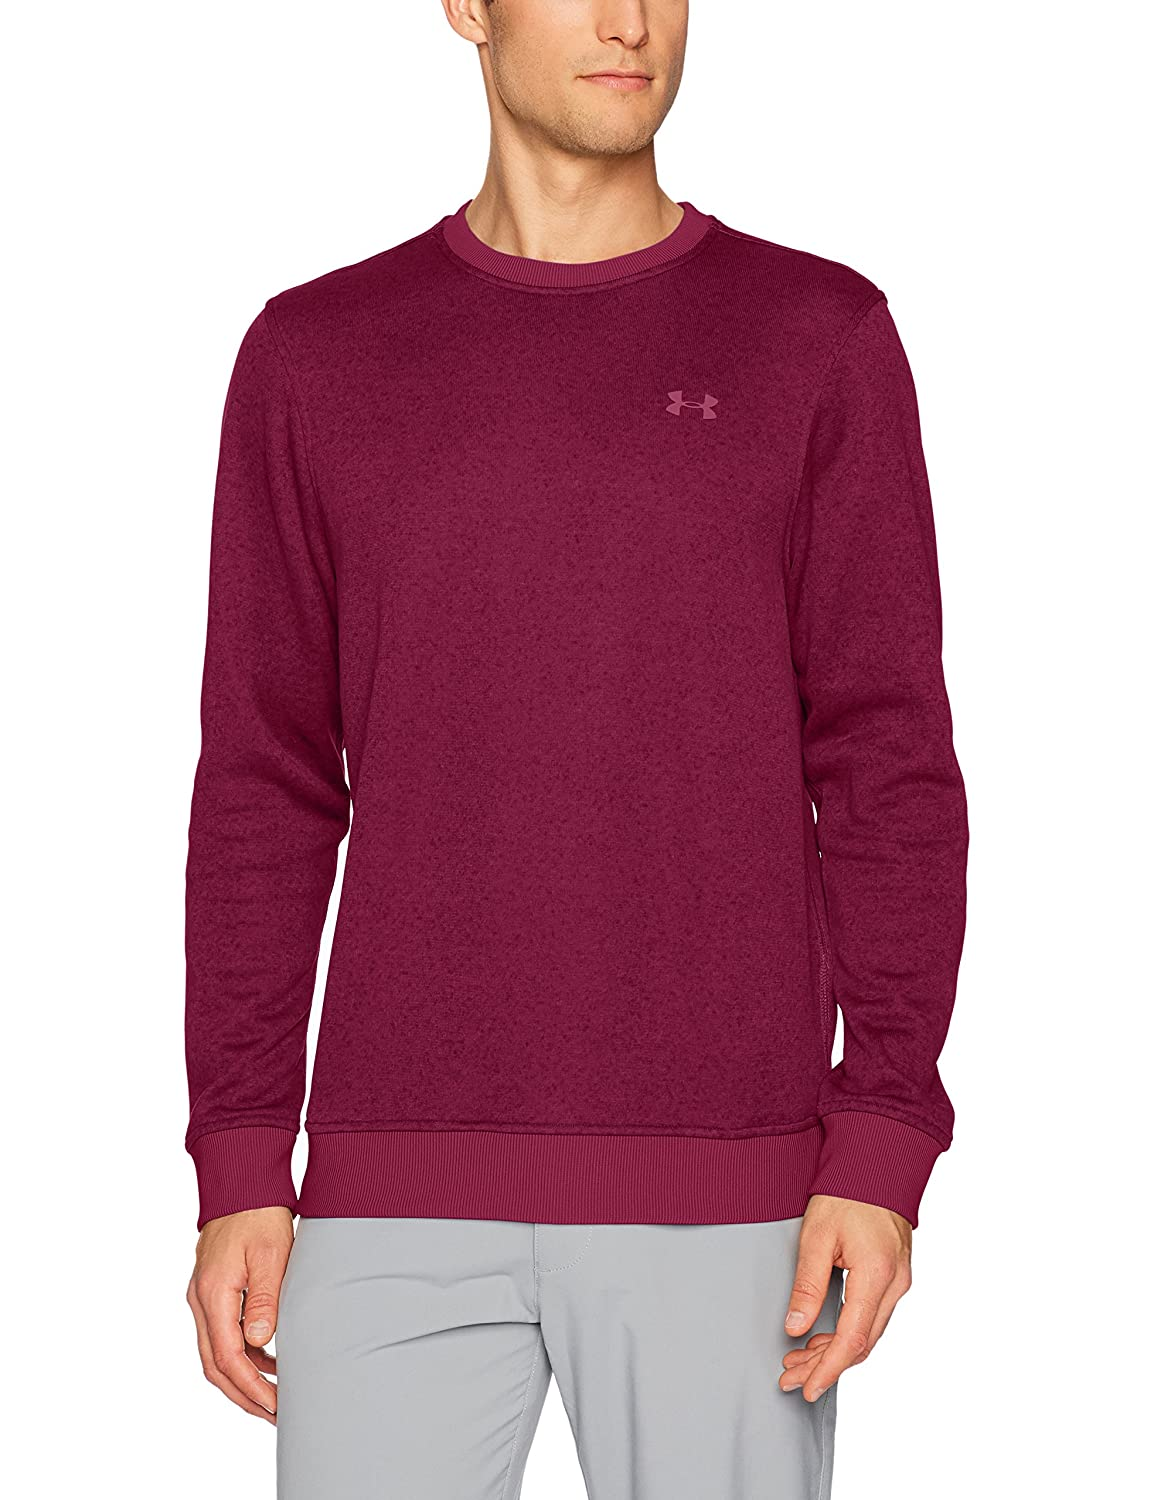 Under Armour Storm SweaterFleece Patterned Crew Fleece